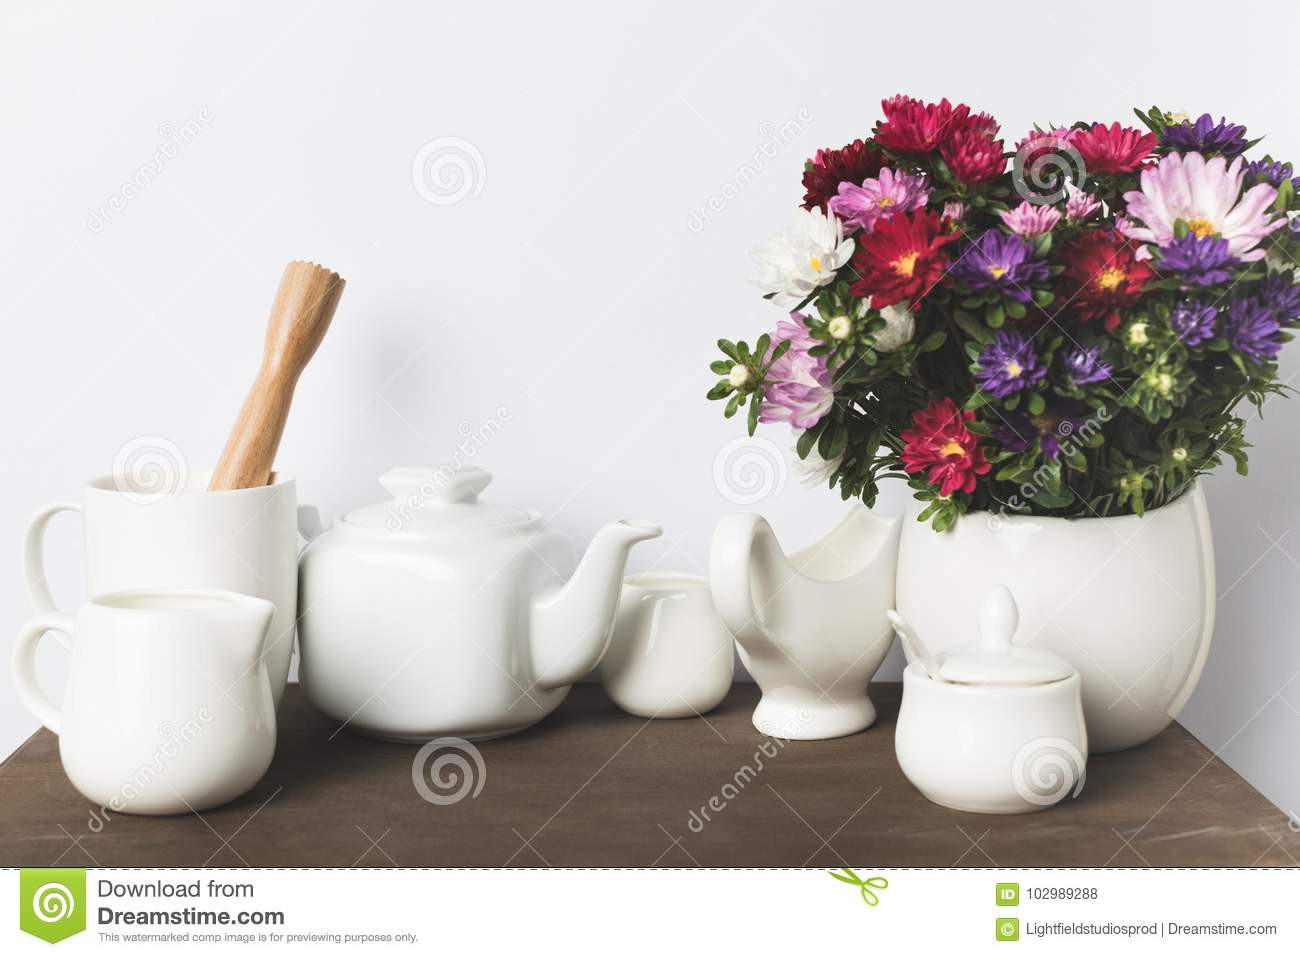 ceramic boot vase of wooden flower vase pics kitchen utensils and flowers stock image of with regard to wooden flower vase pics kitchen utensils and flowers stock image of domestic table of wooden flower